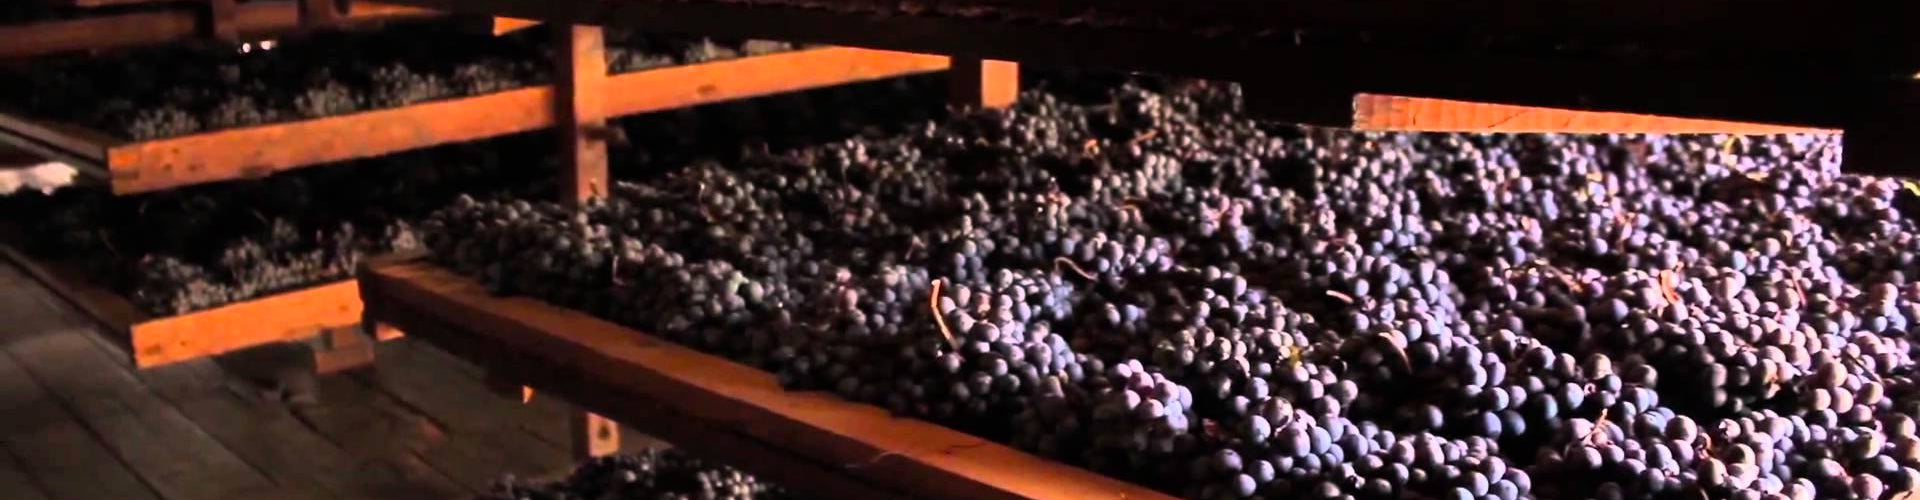 Corvina grapes drying in Bertani Cellar